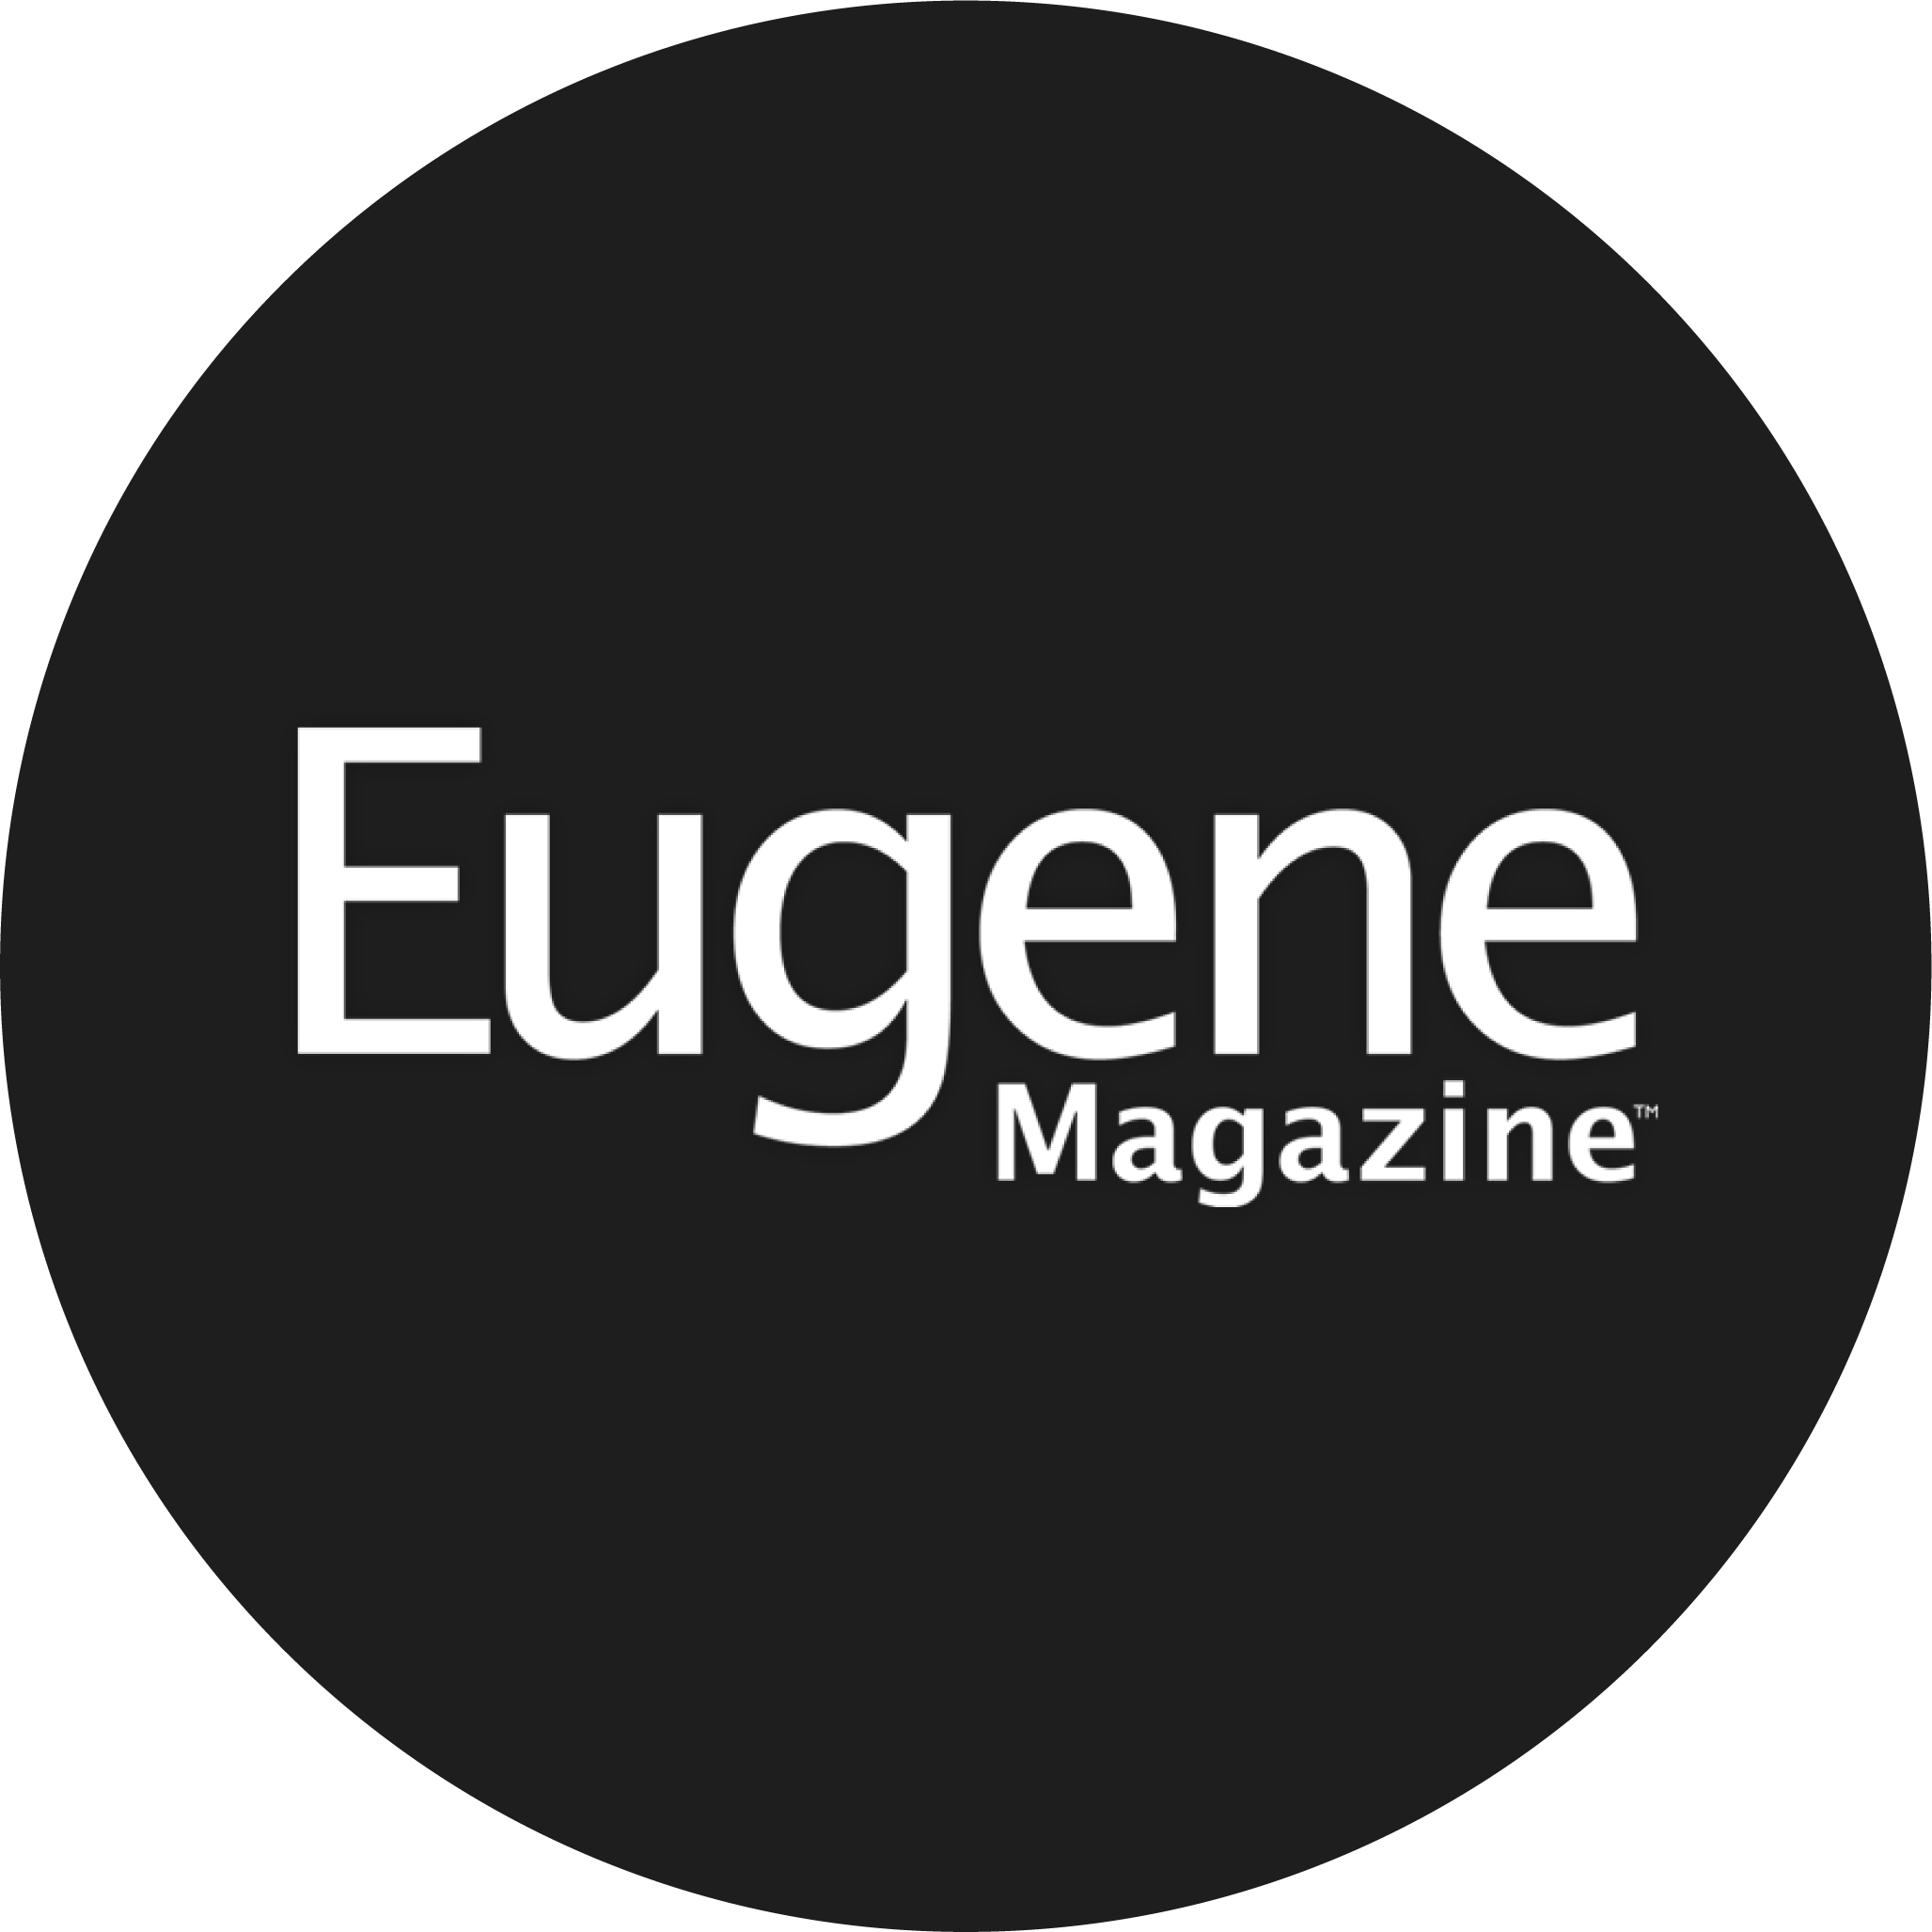 https://i1.wp.com/eventcrush.com/wp-content/uploads/2019/04/Eugene-Mag-07.jpg?ssl=1